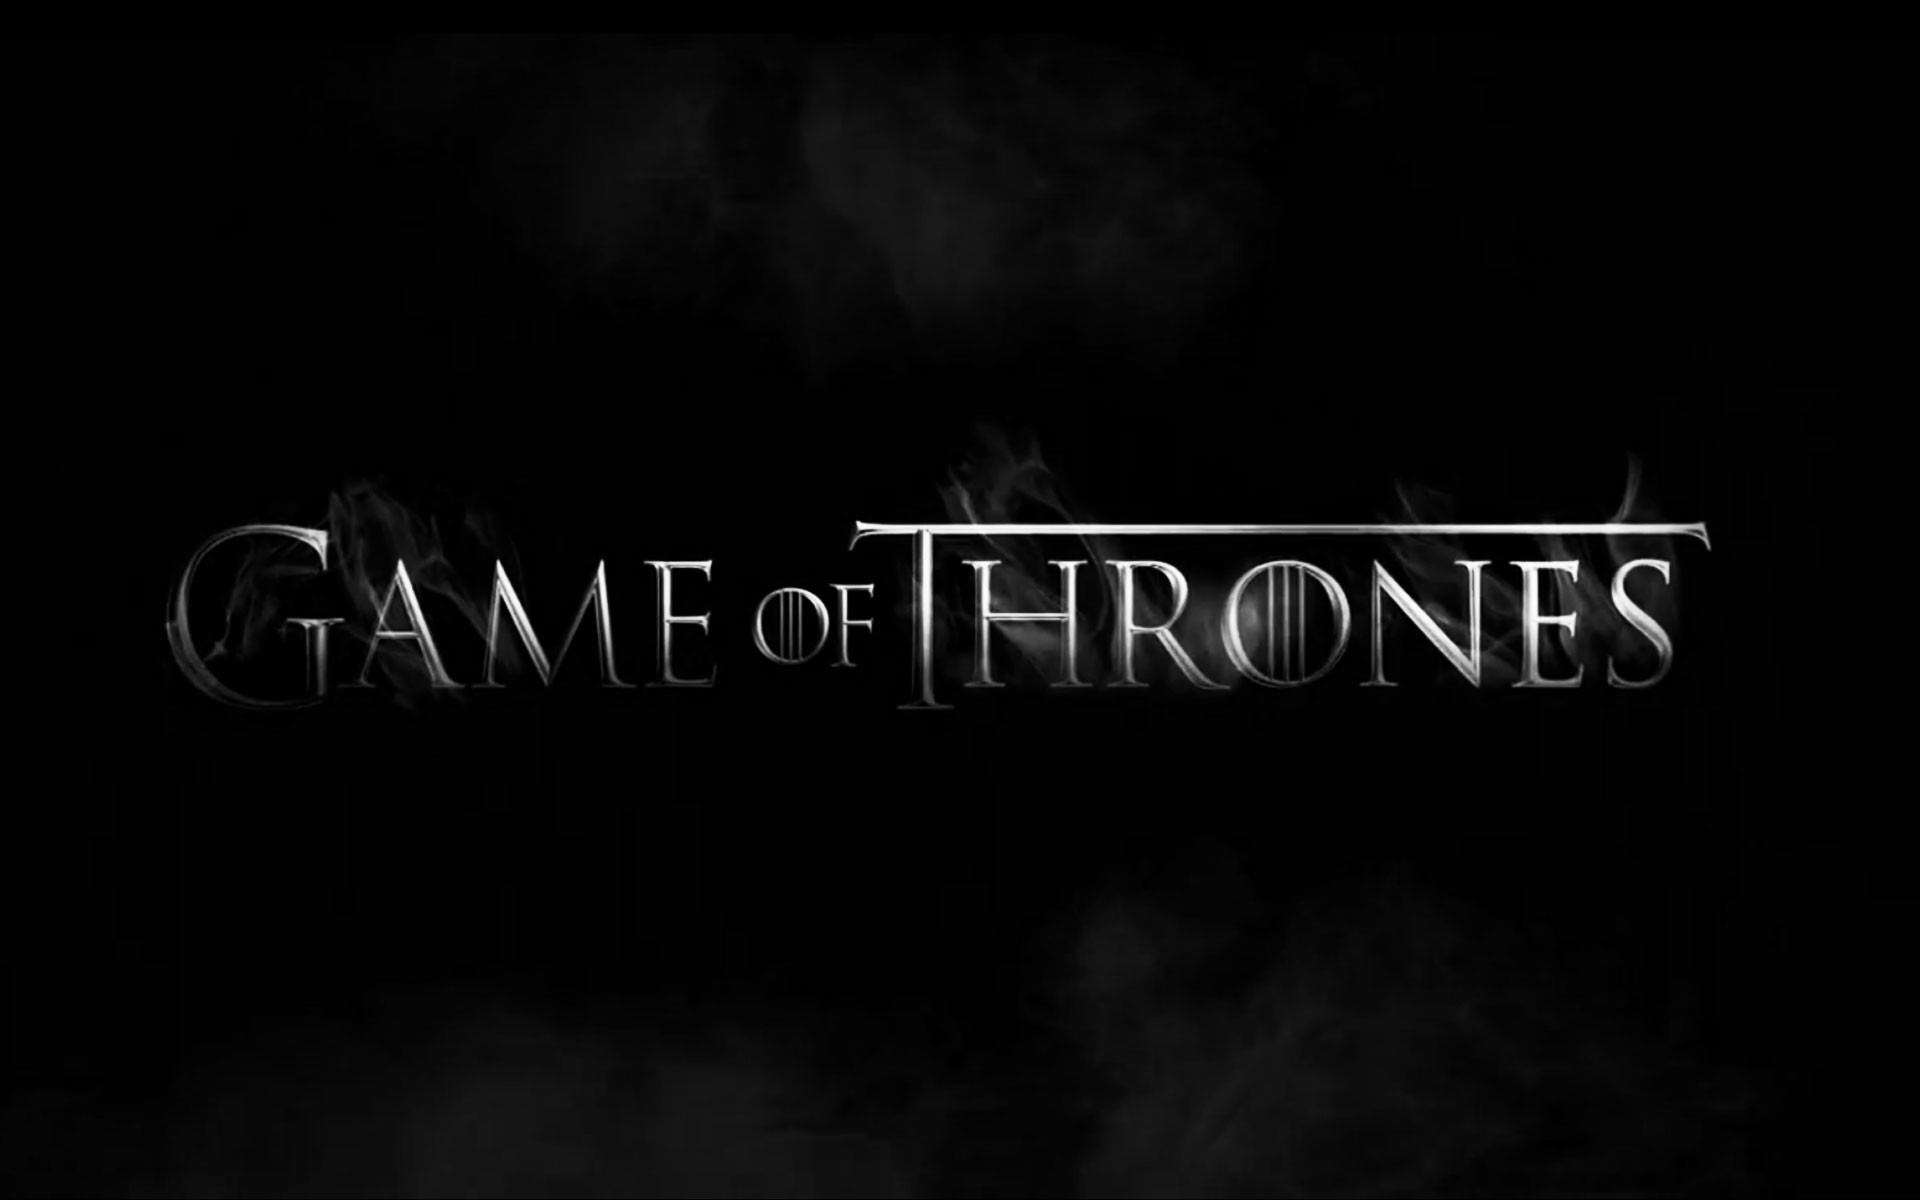 Game Of Thrones Hd Wallpaper 40352